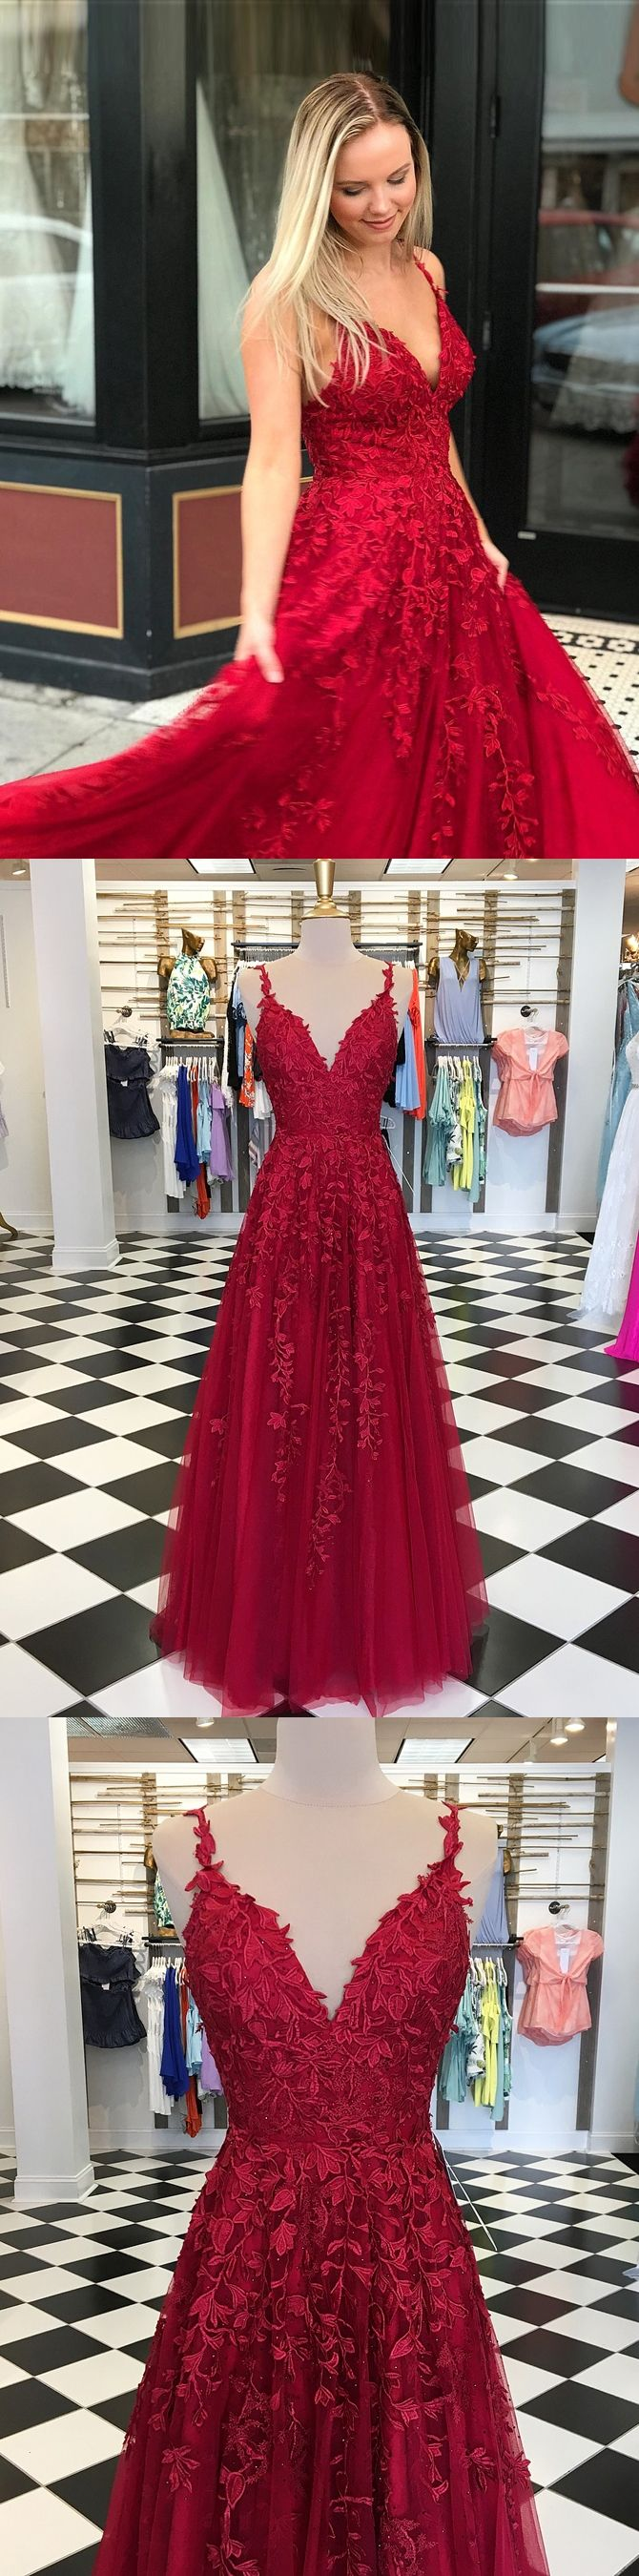 Aline spaghetti straps floorlength red prom dress with appliques